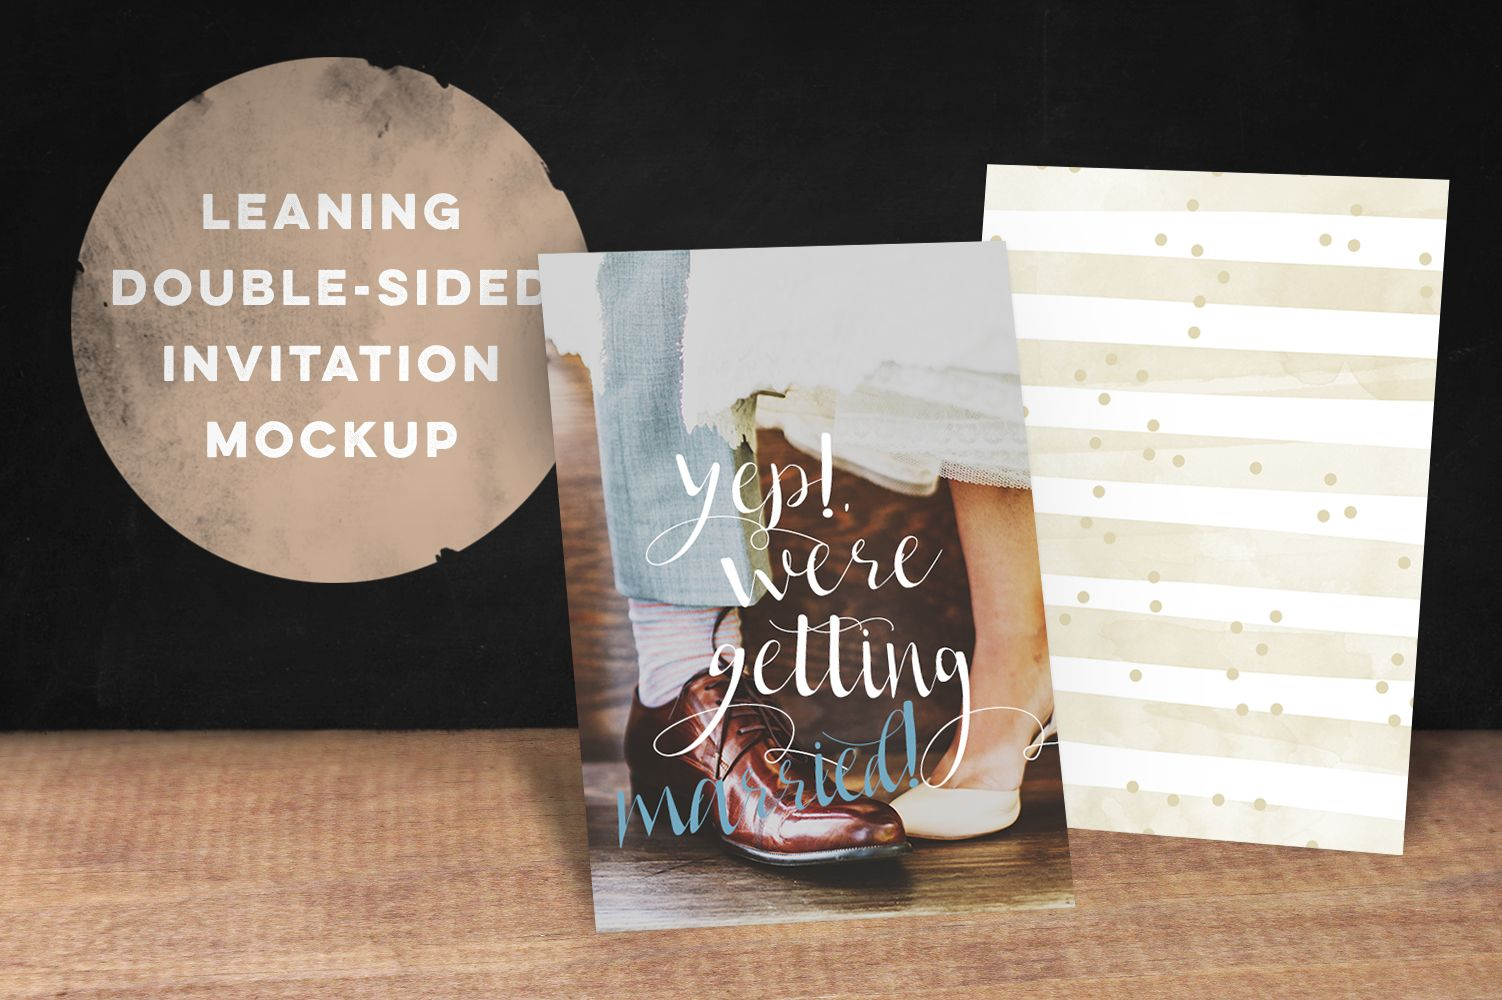 http://crtv.mk/c0YPn Clever way to show your invitation designs! #mockup #invitation #card #showcase #print #etsy